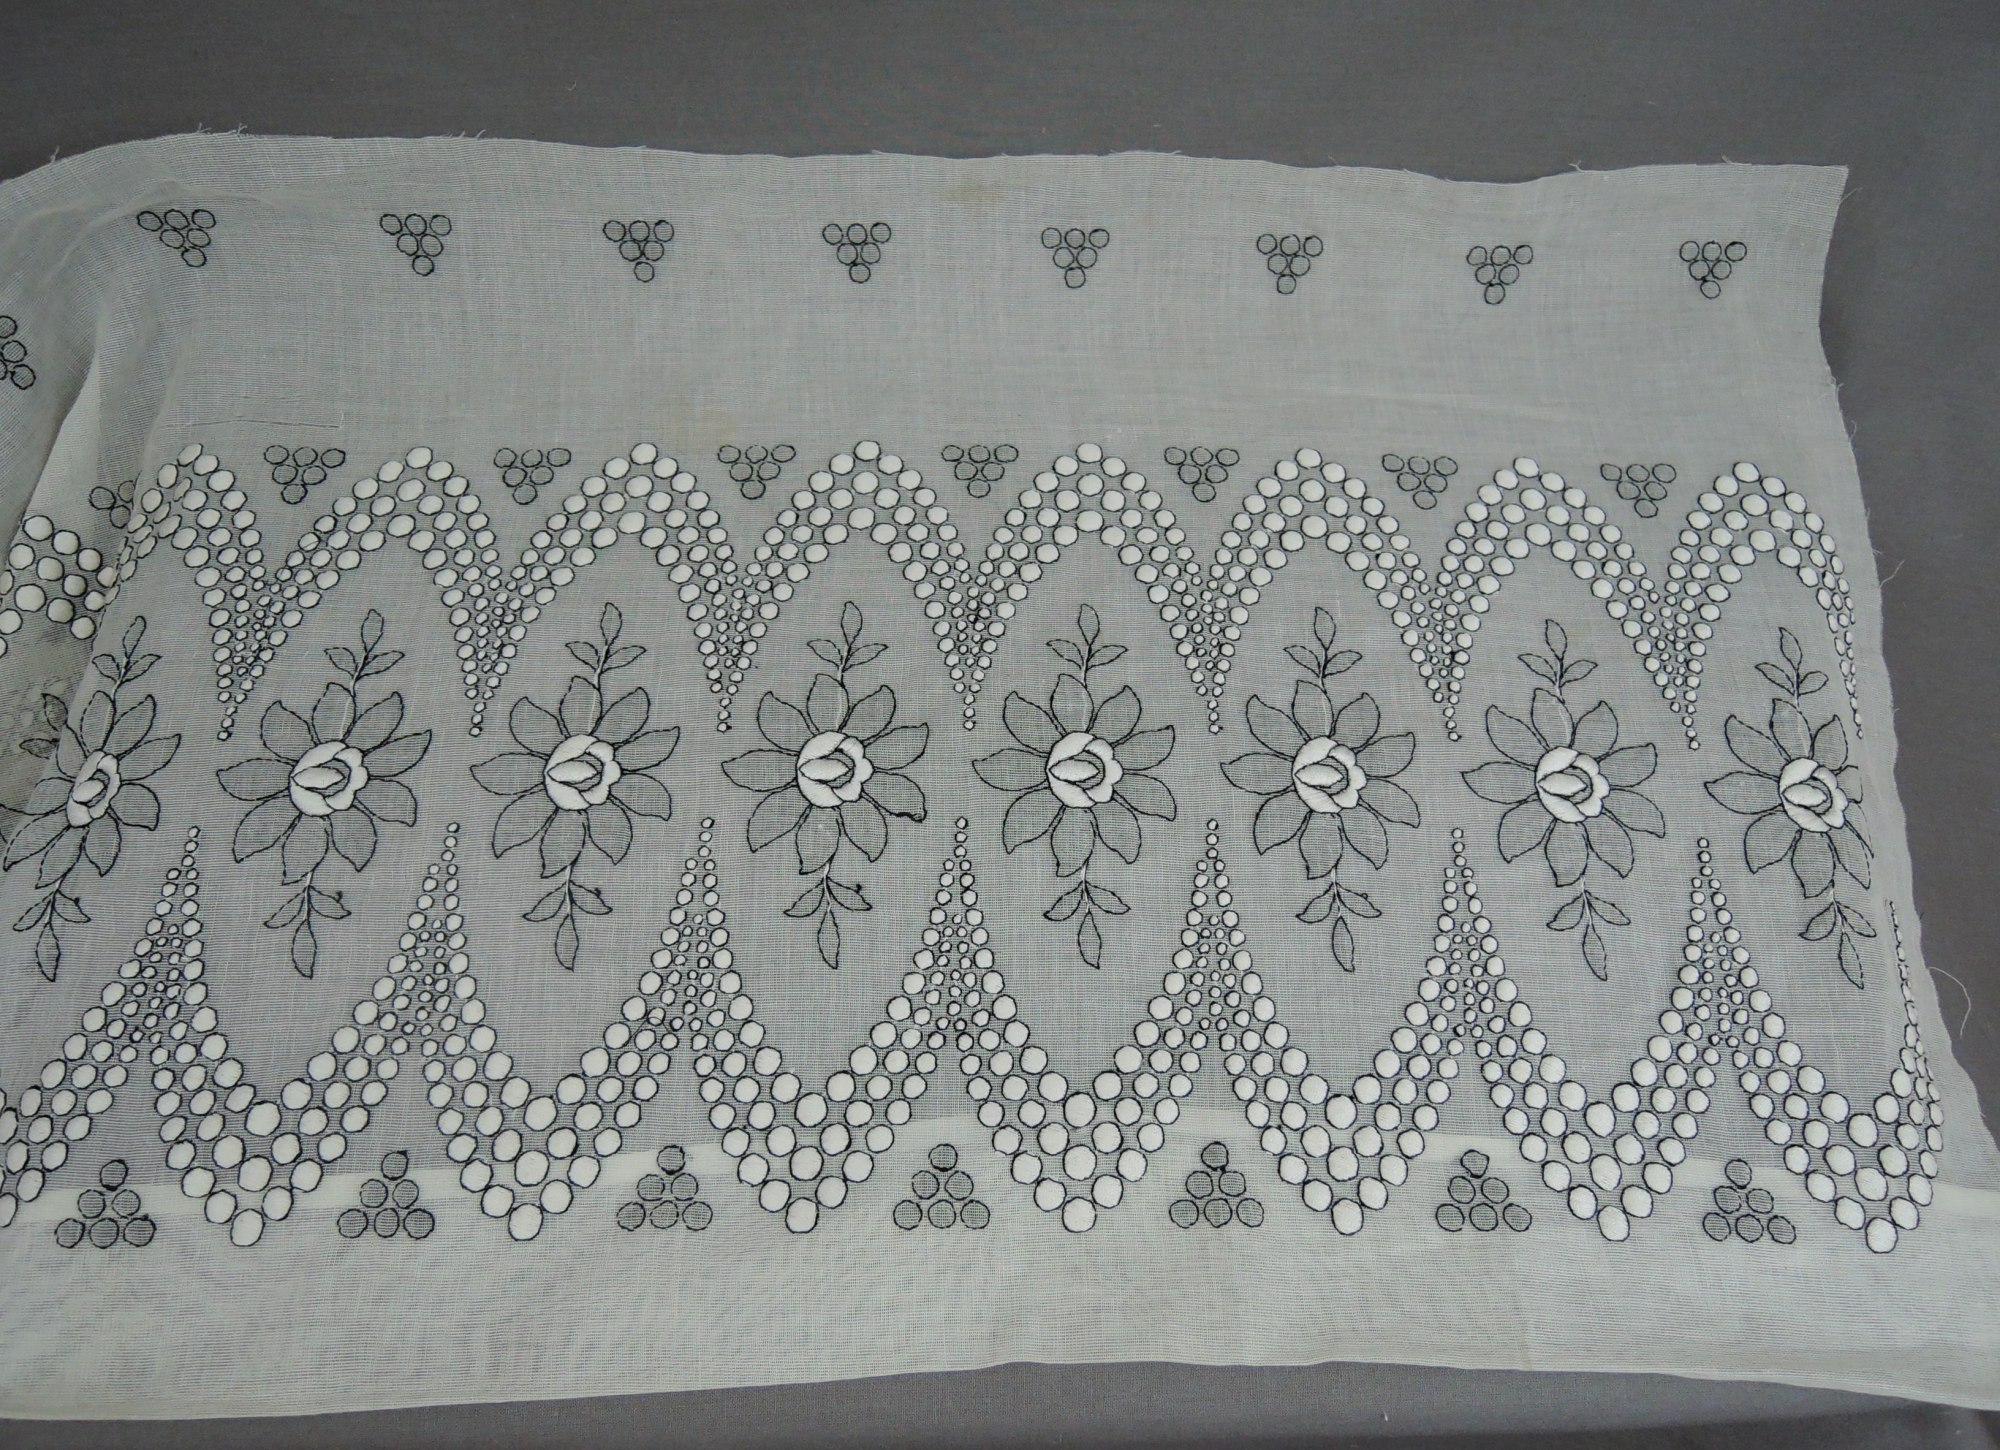 Vintage 1920s Embroidered Lace Dress Remnant, 1910s Black & White Floral